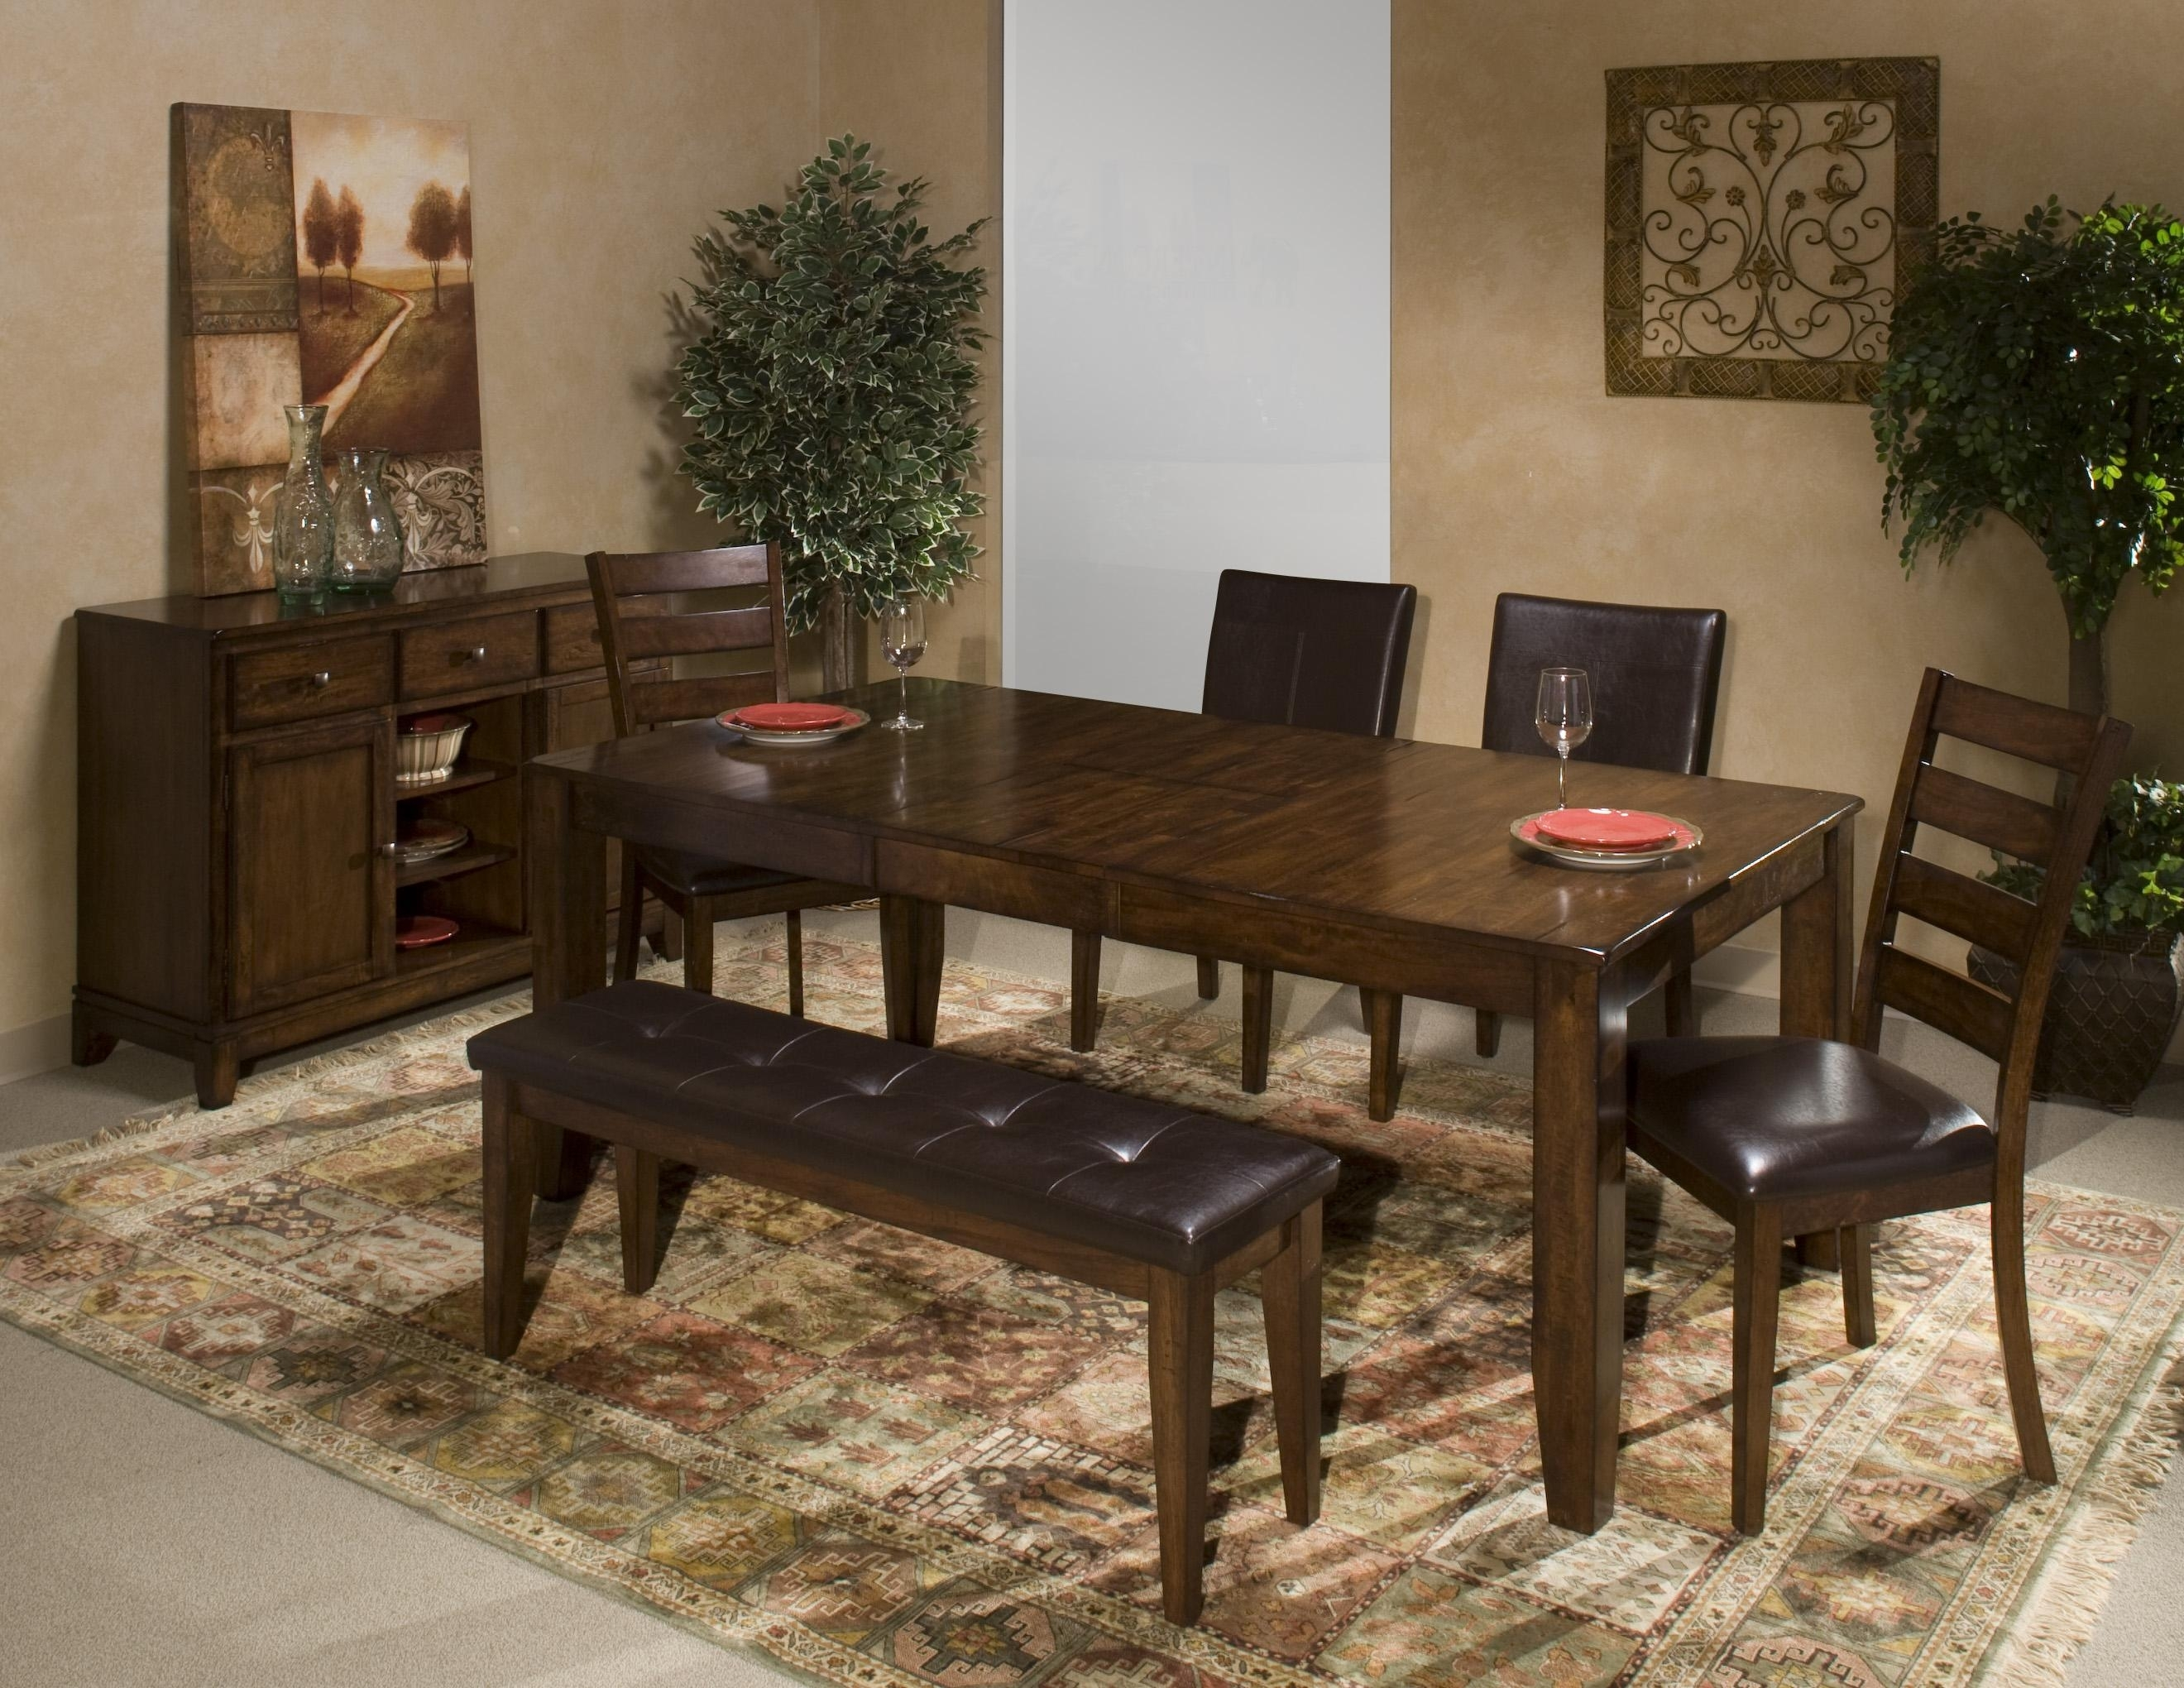 Intercon Kona 5 Piece Dining Set | Boulevard Home Furnishings With Best And Newest Market 5 Piece Counter Sets (Image 14 of 20)